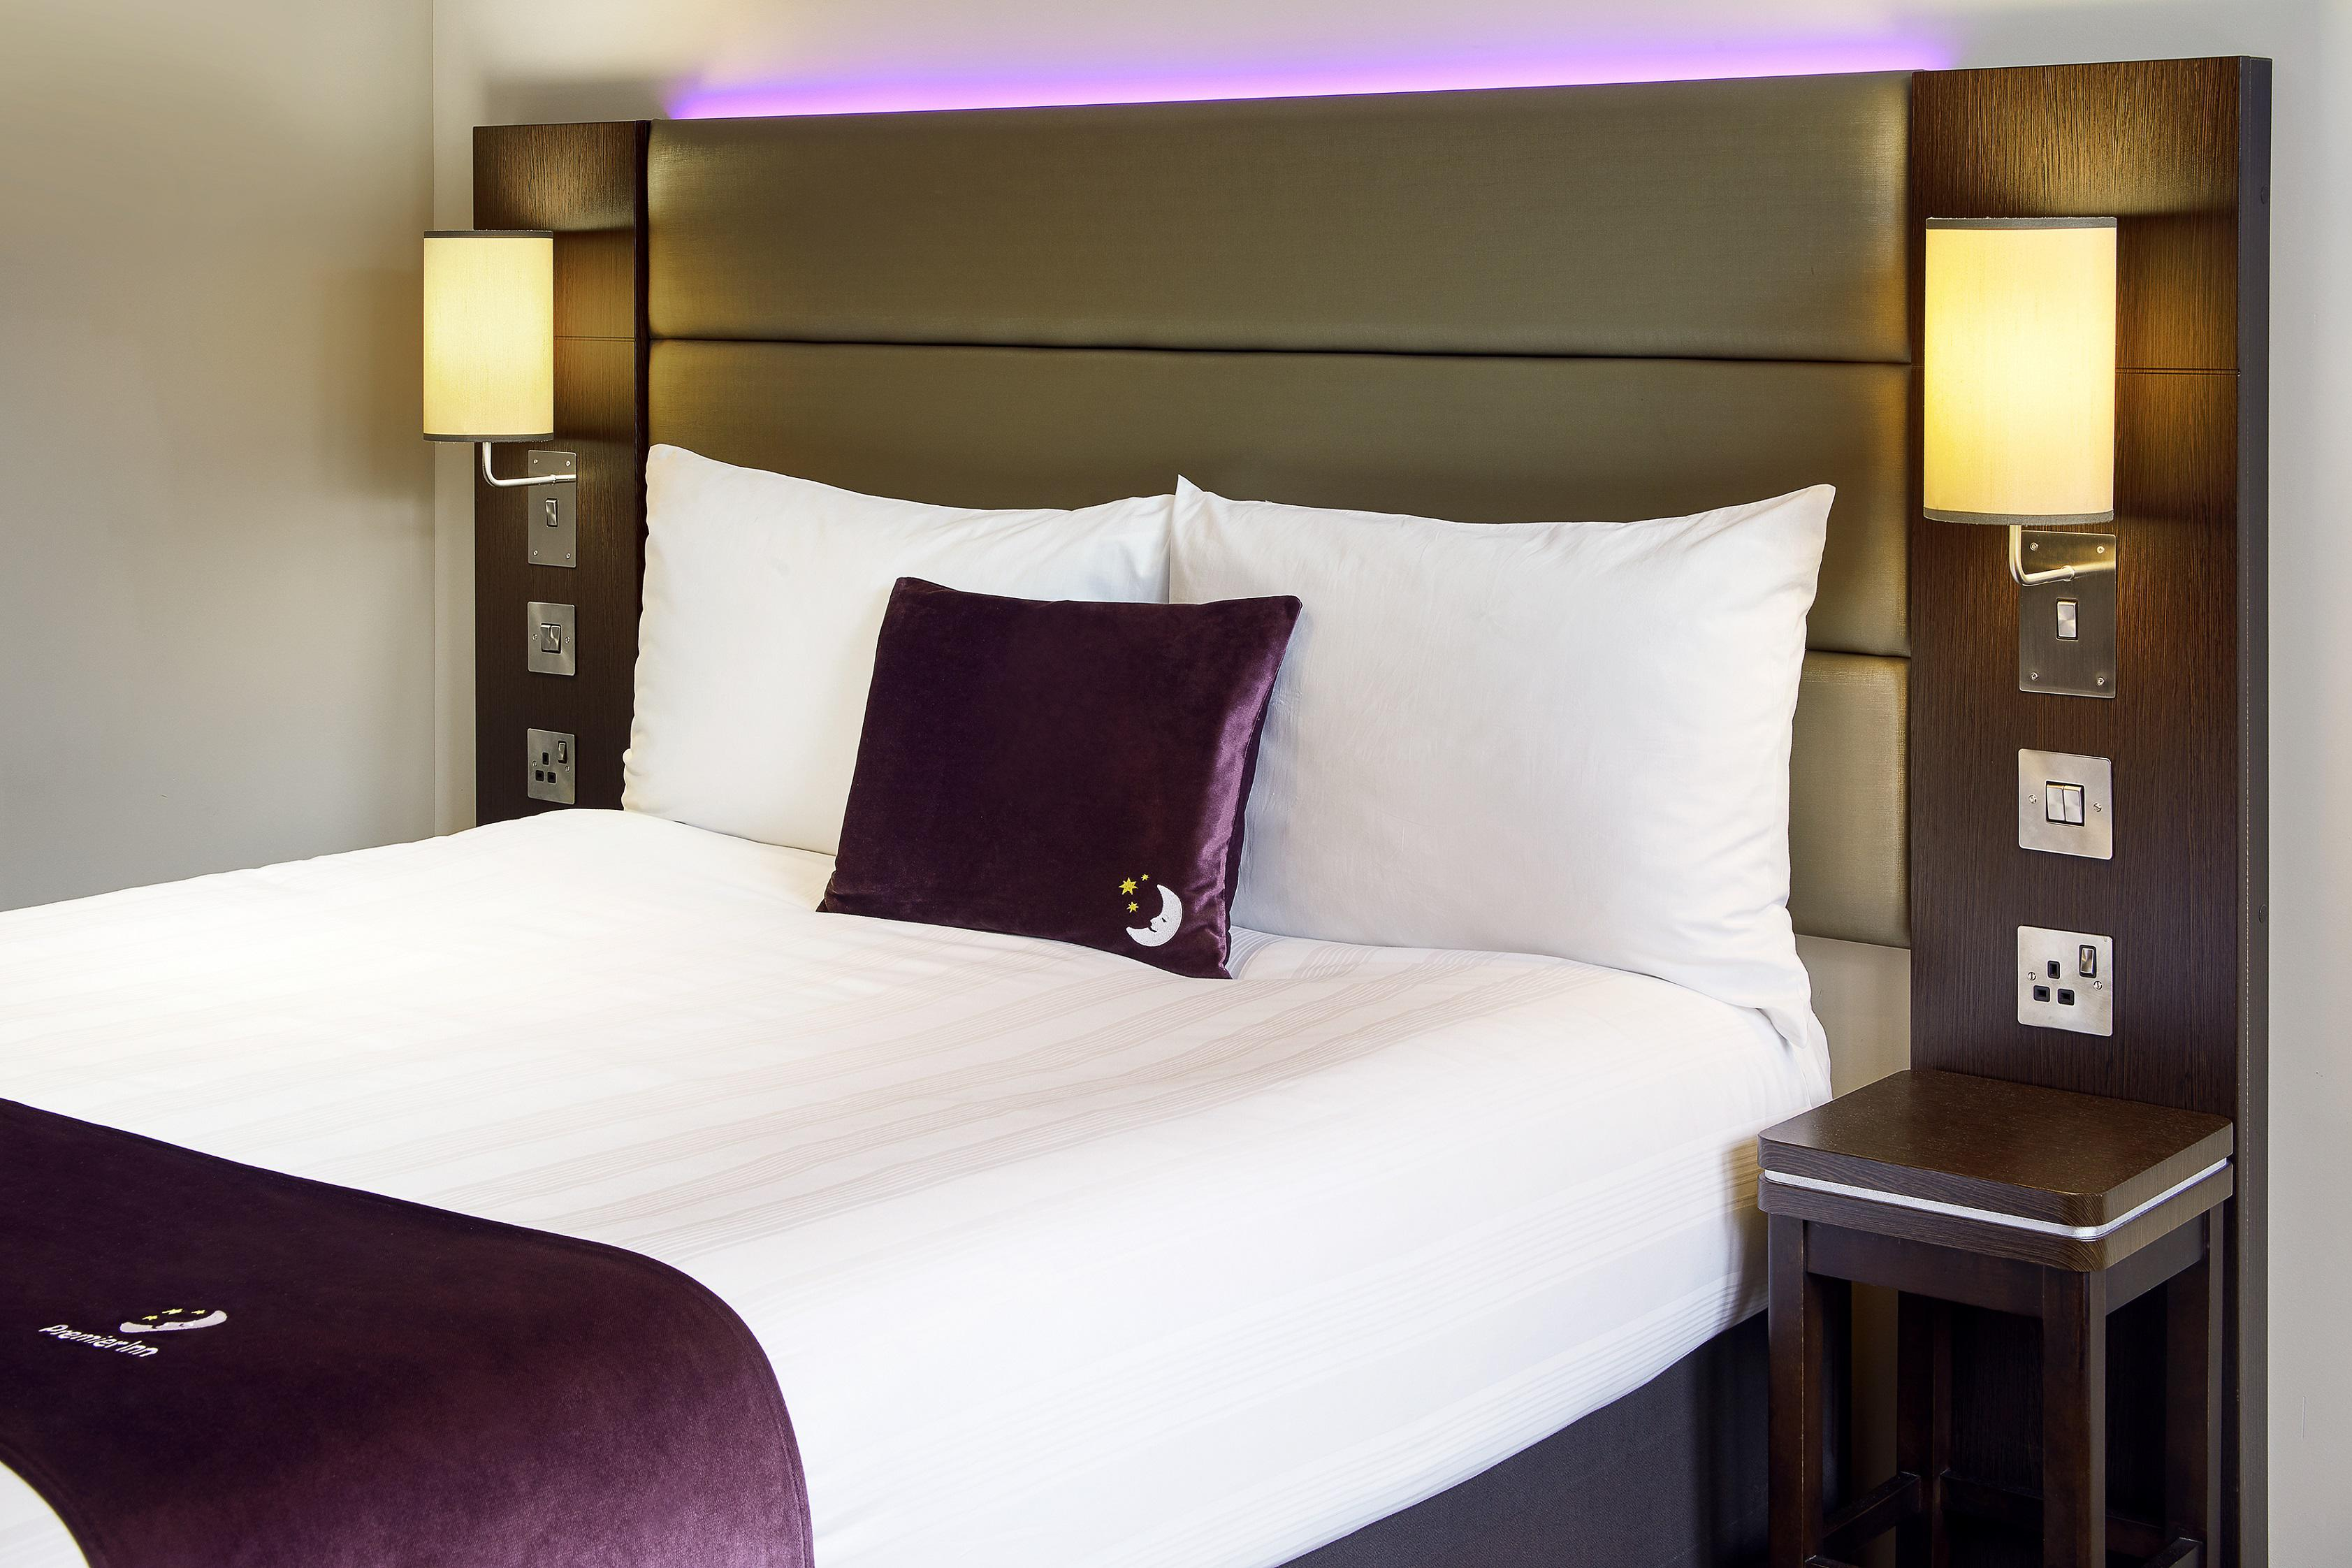 Premier Inn Edinburgh Central (Lauriston Place) hotel